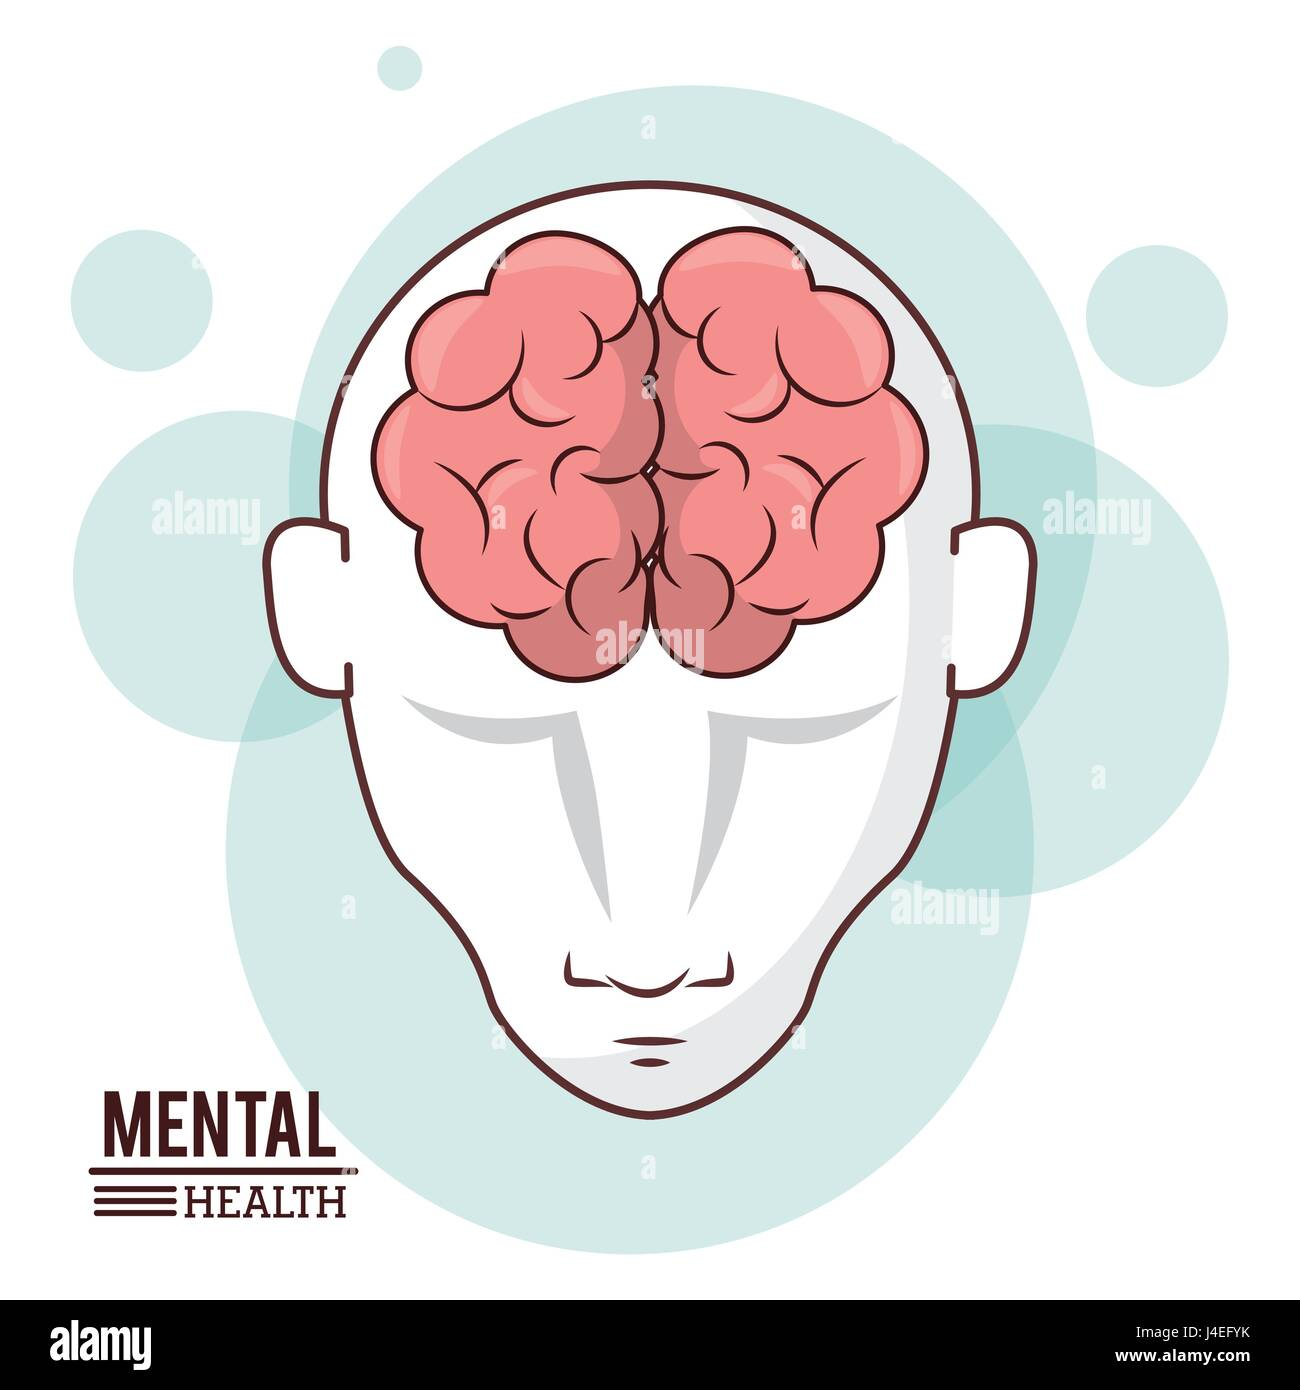 mental health, human head brain front intelligence design - Stock Image